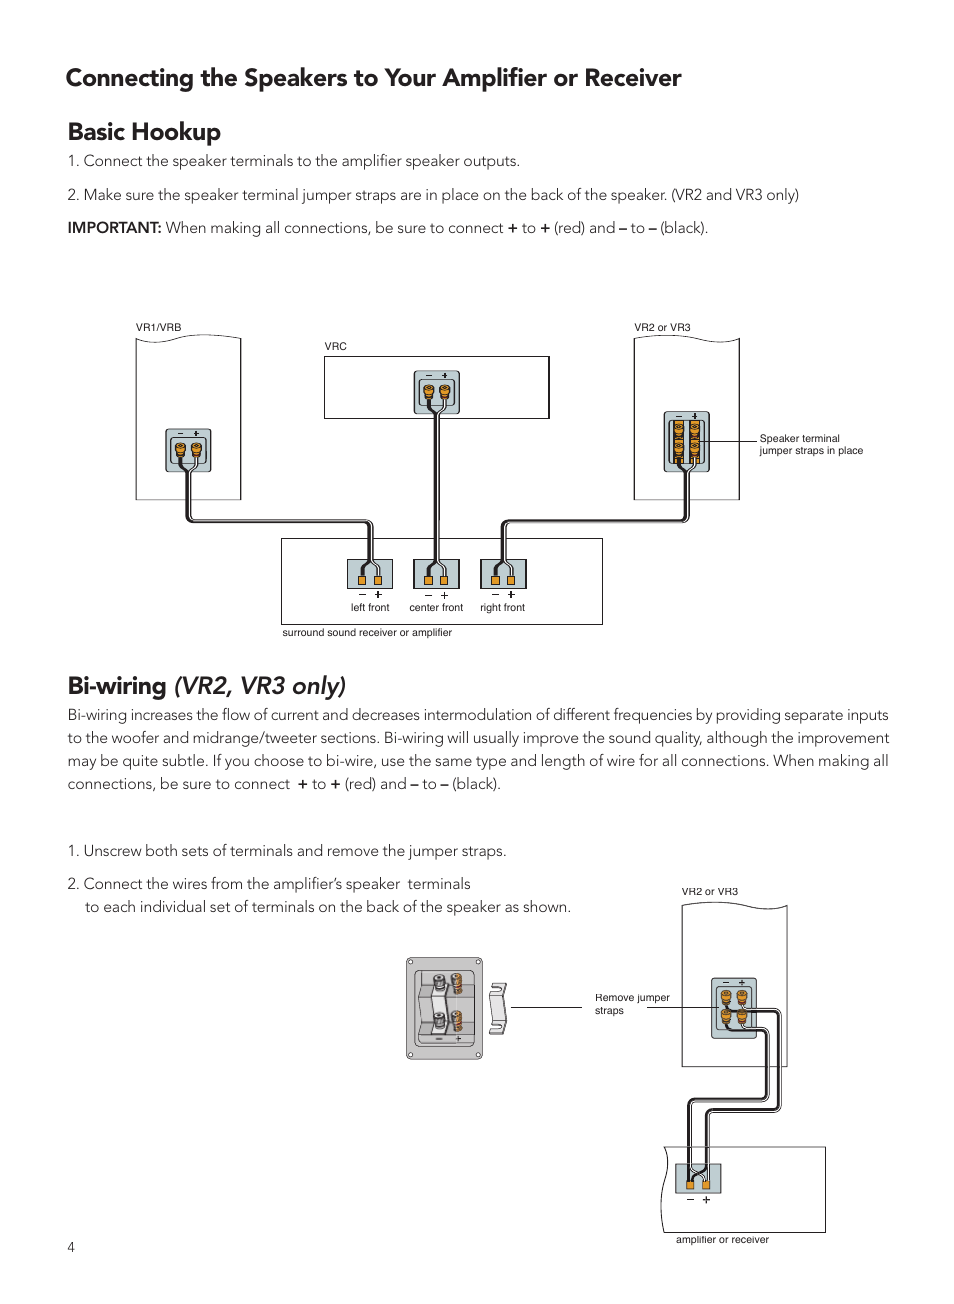 Basic hookup, Bi-wiring (vr2, vr3 only) | Boston Acoustics VRC User Manual  | Page 4 / 8Manuals Directory